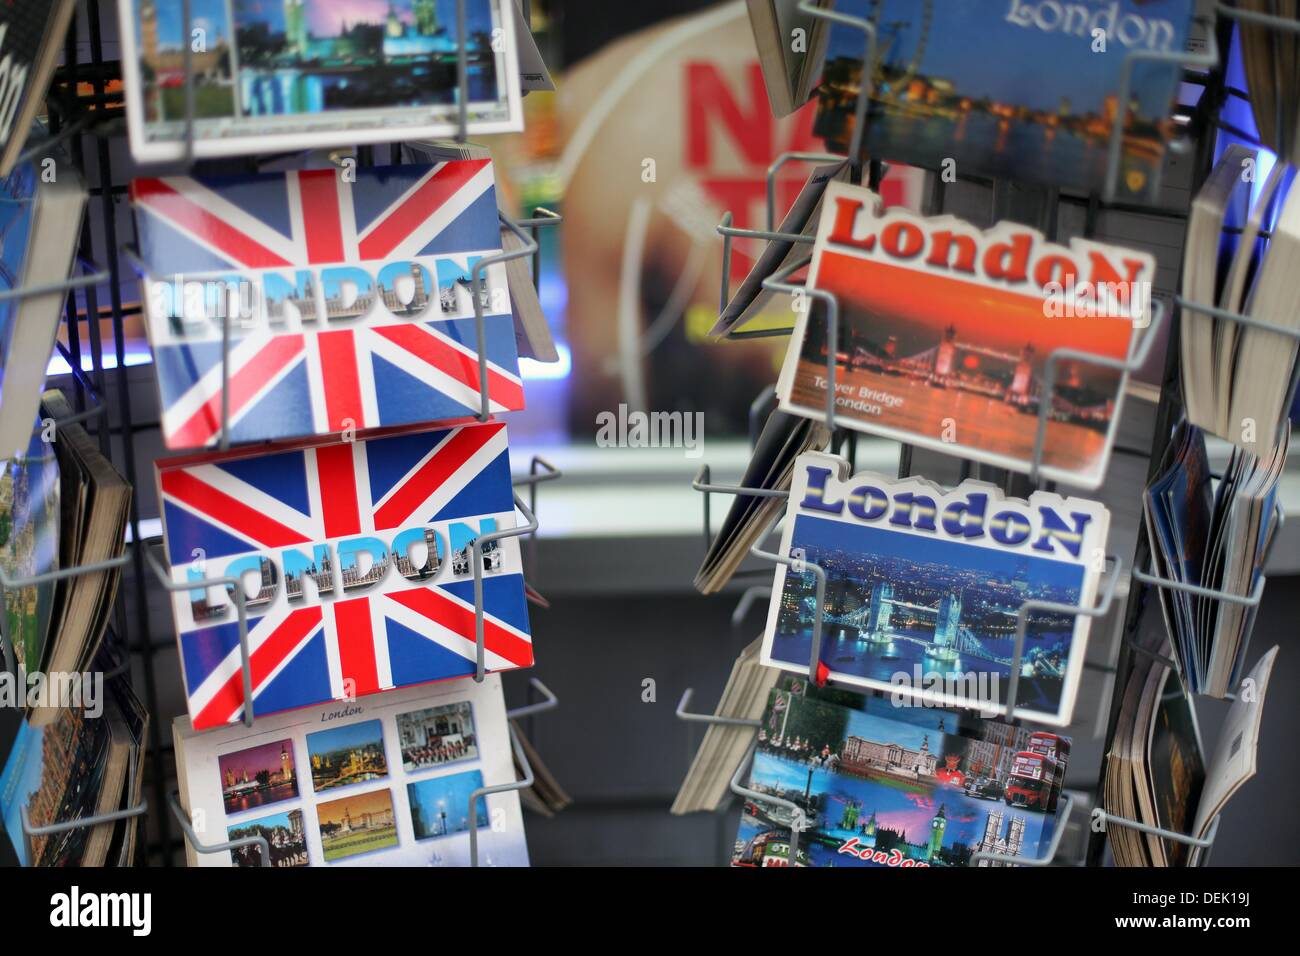 London postcards for sale, London, England, UK - Stock Image